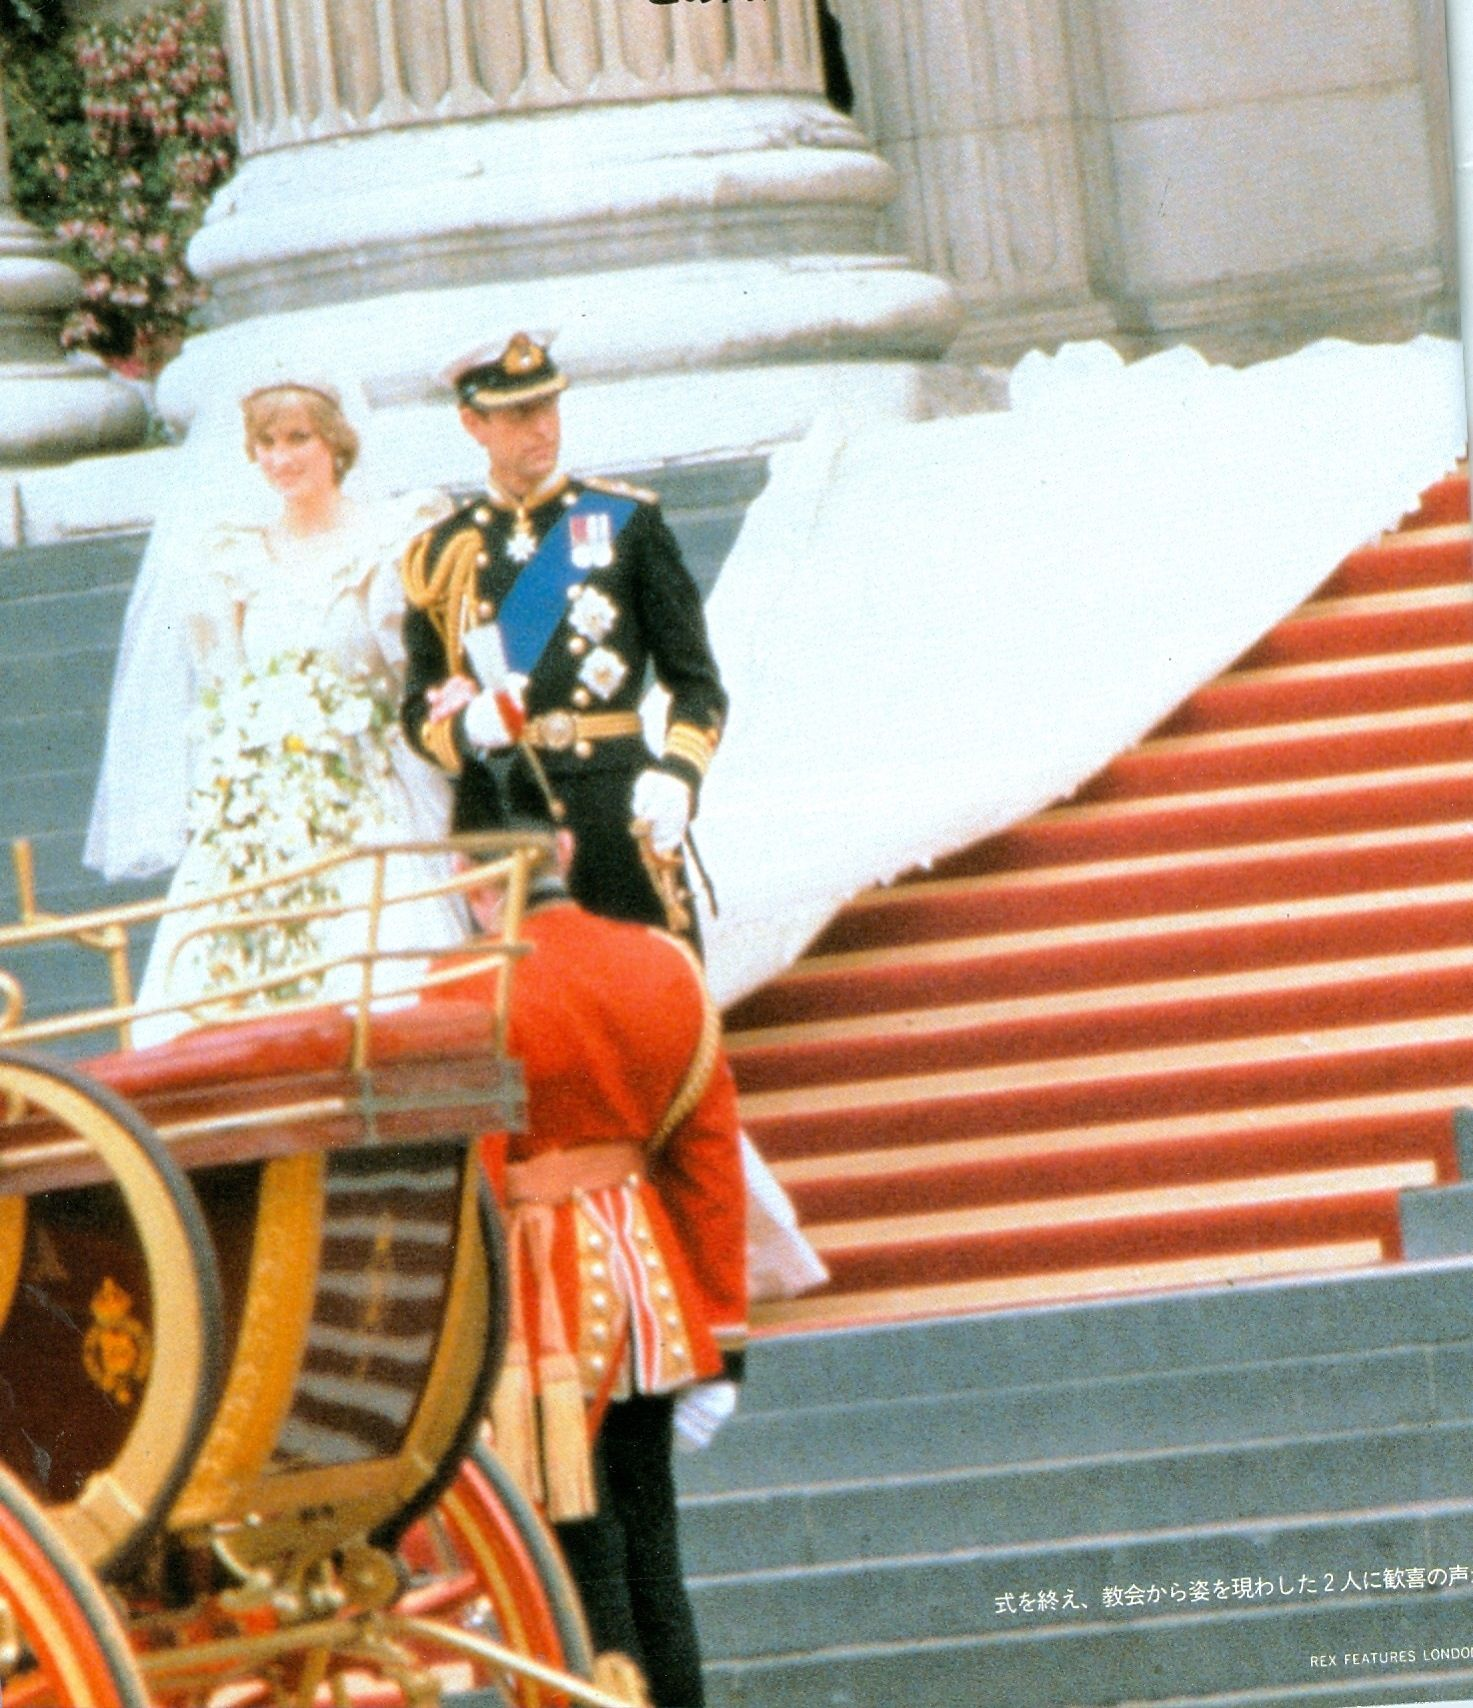 July 29, 1981 Lady Diana Spencer marries Prince Charles